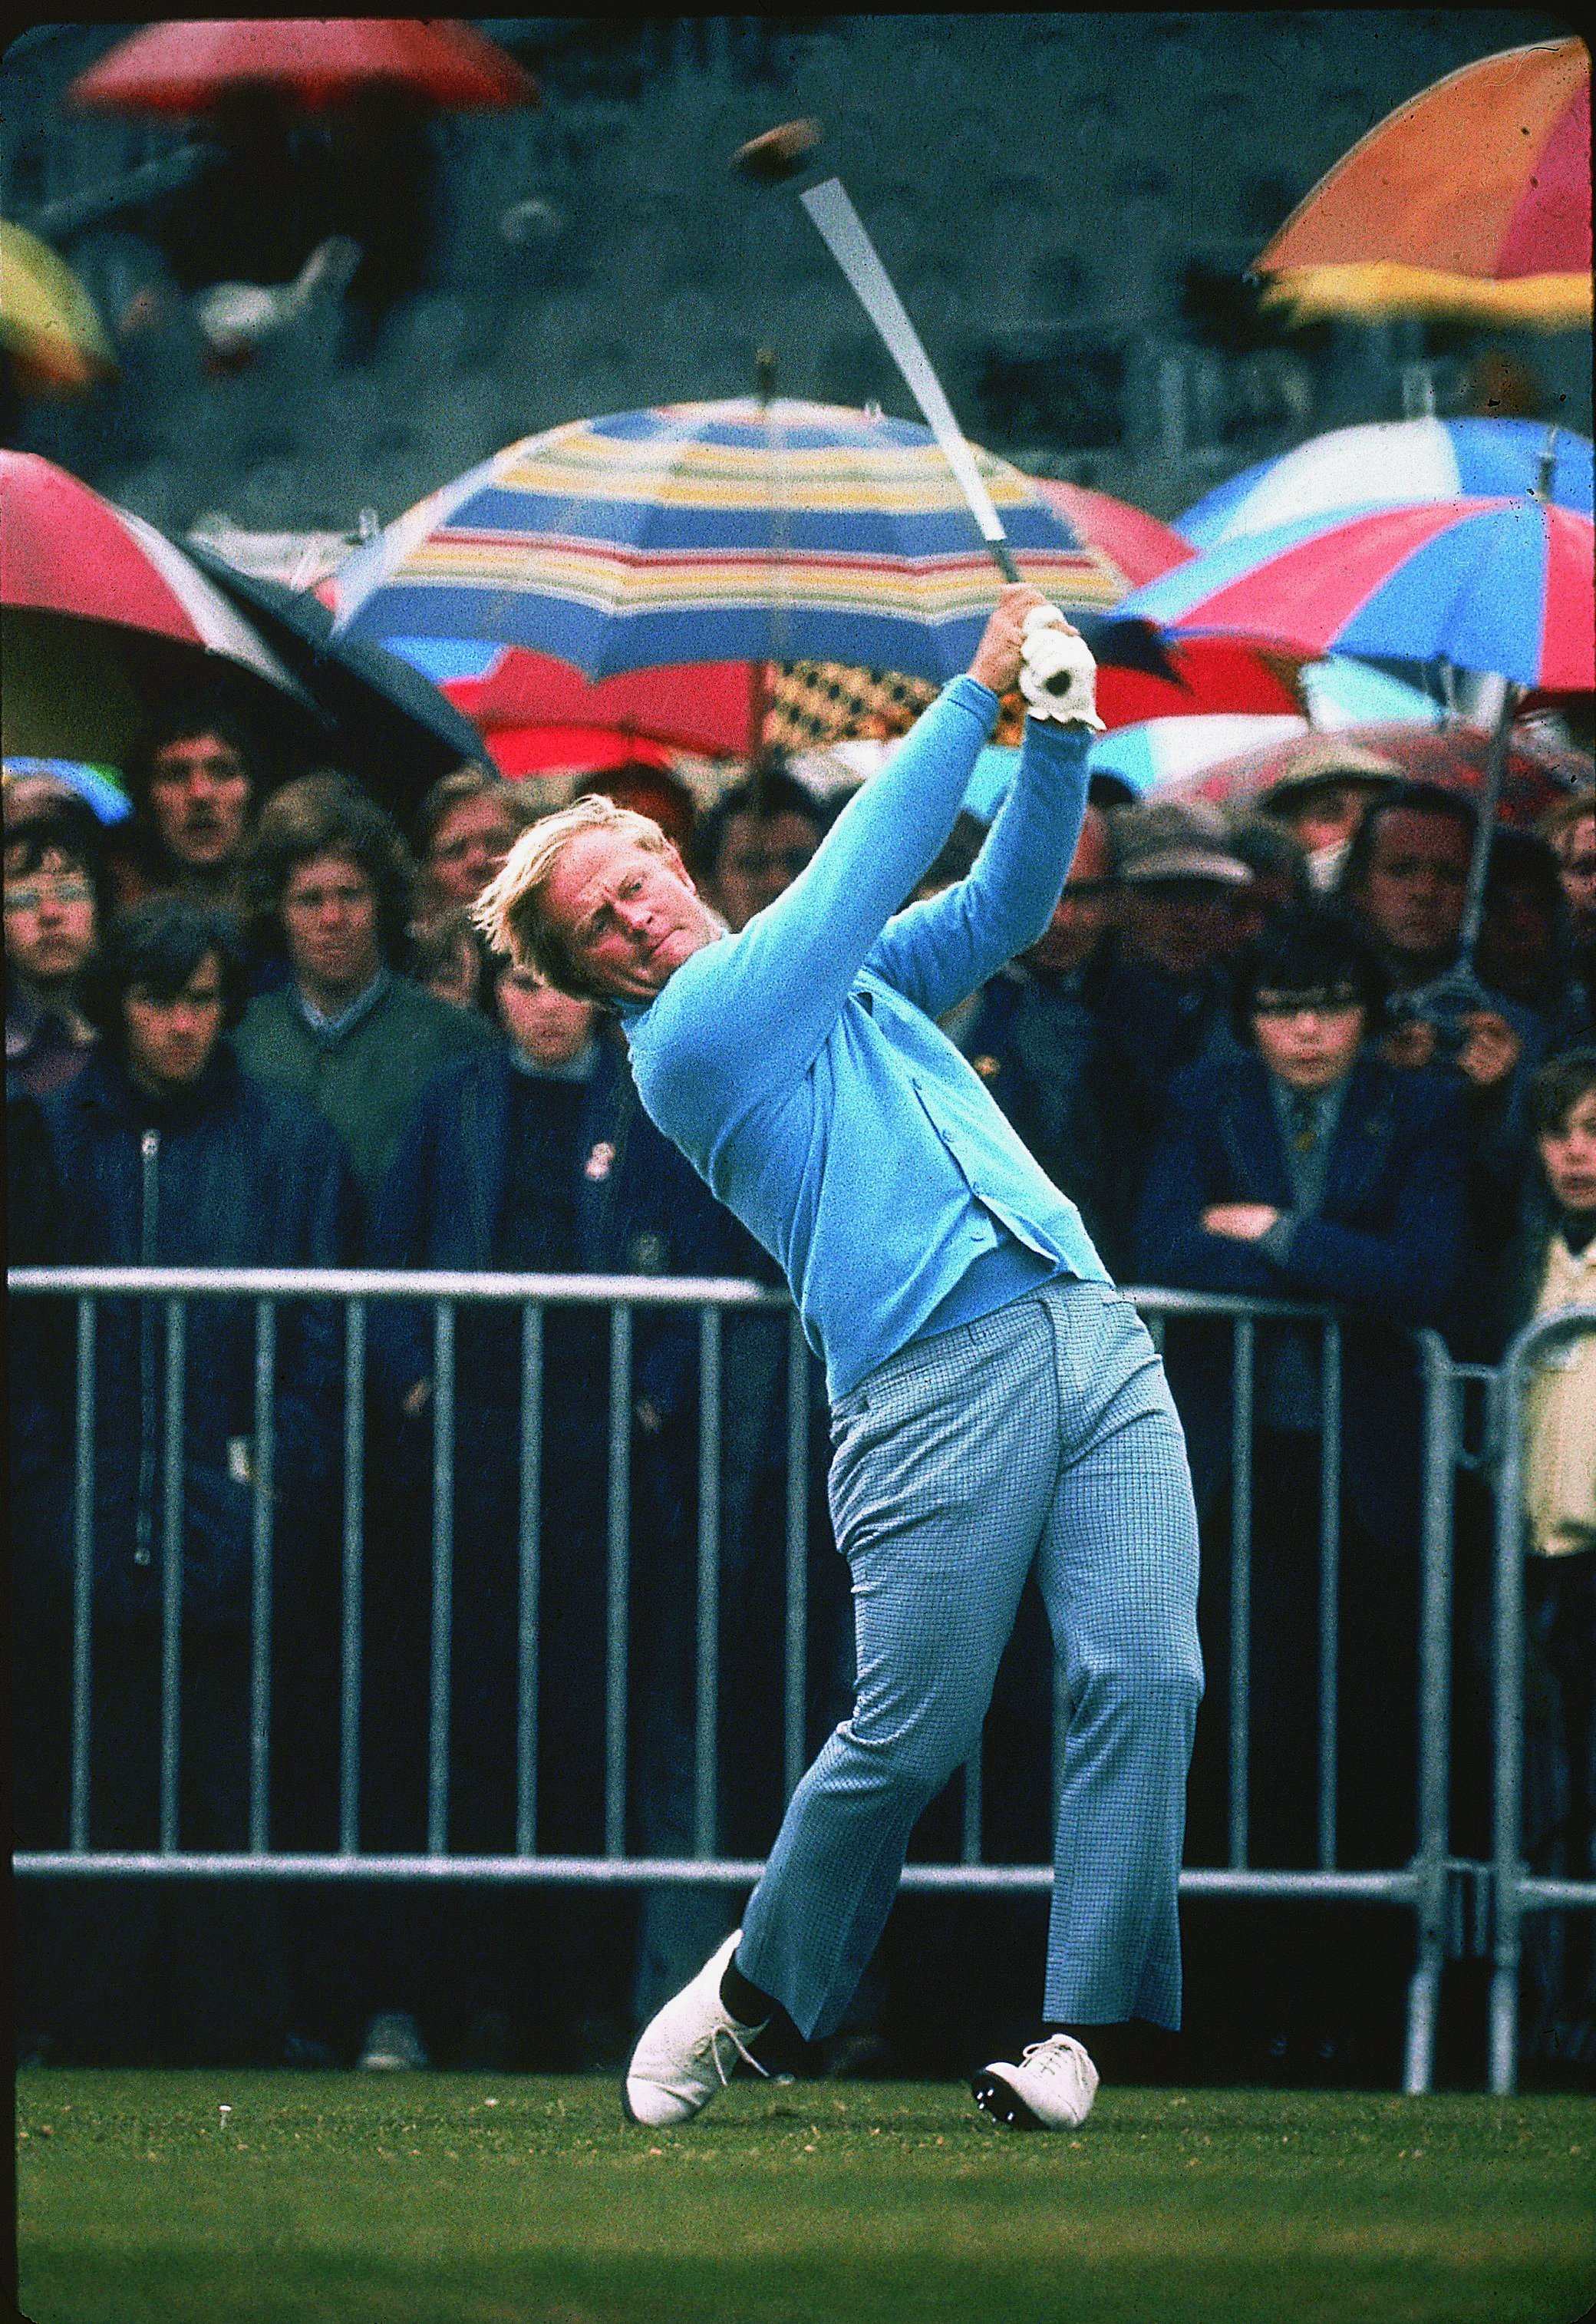 Jack Nicklaus plays at 1972 British Open at Muirfield.